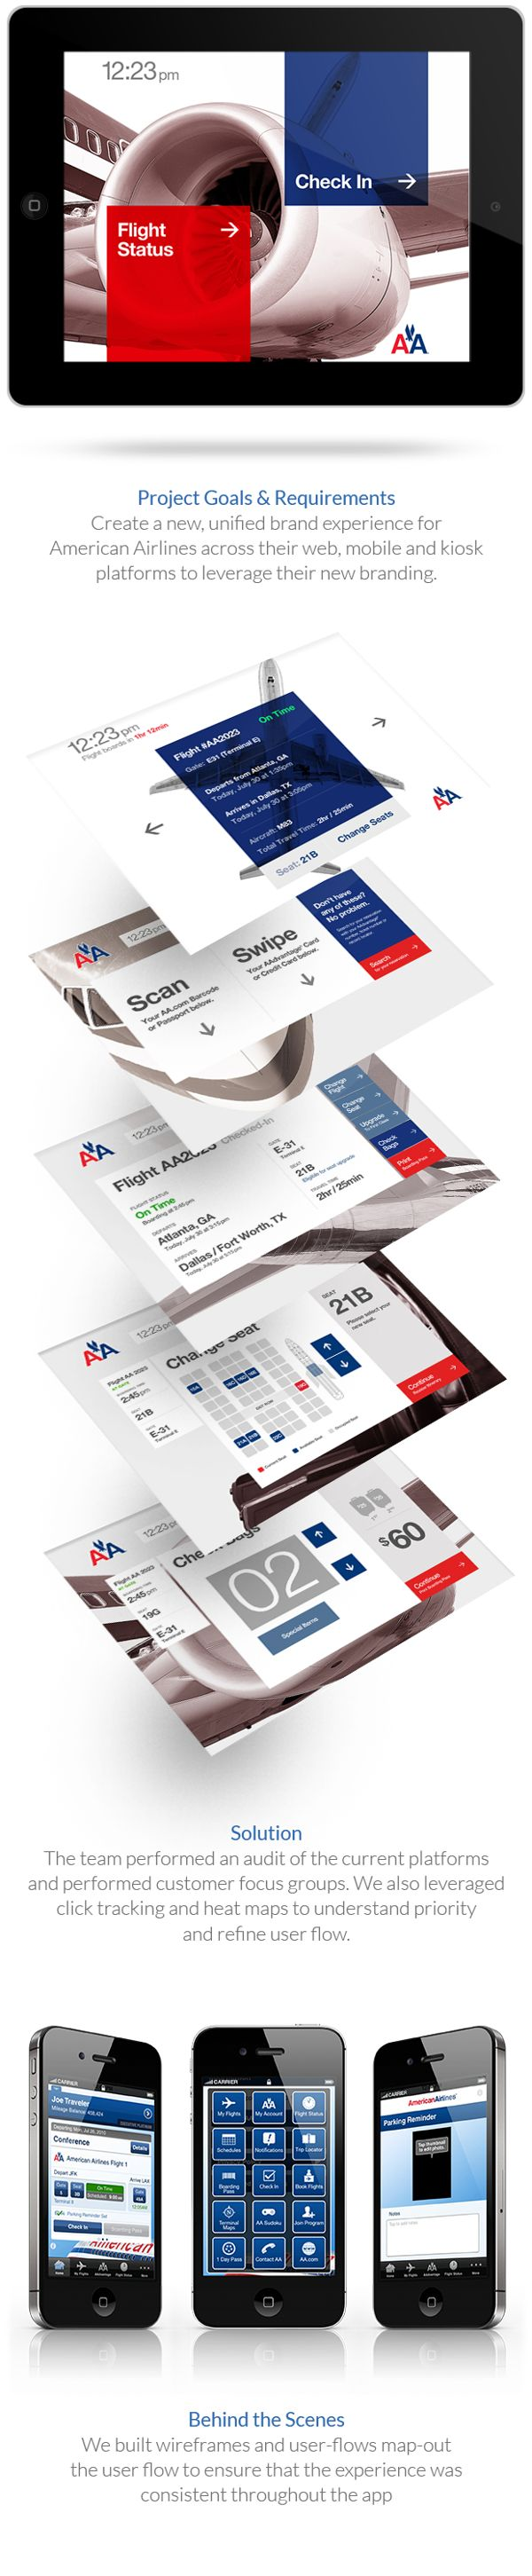 American Airlines Web & Mobile Kiosk by Steven Fisher, via Behance